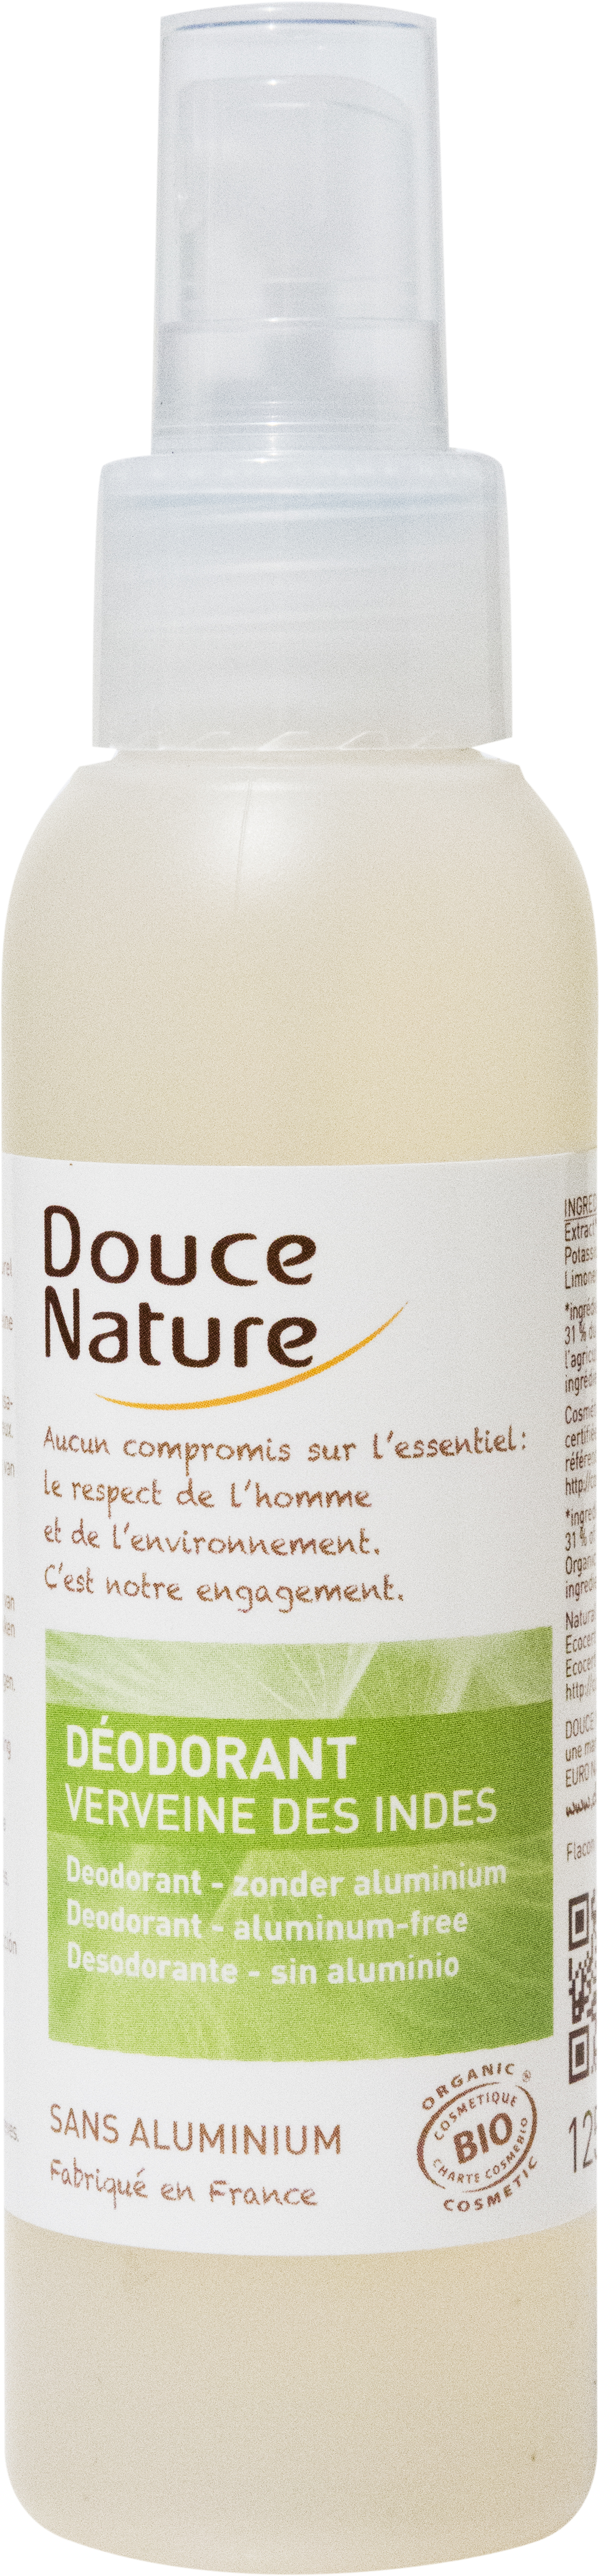 Déodorant spray Verveine des Indes, Douce Nature (125 ml)